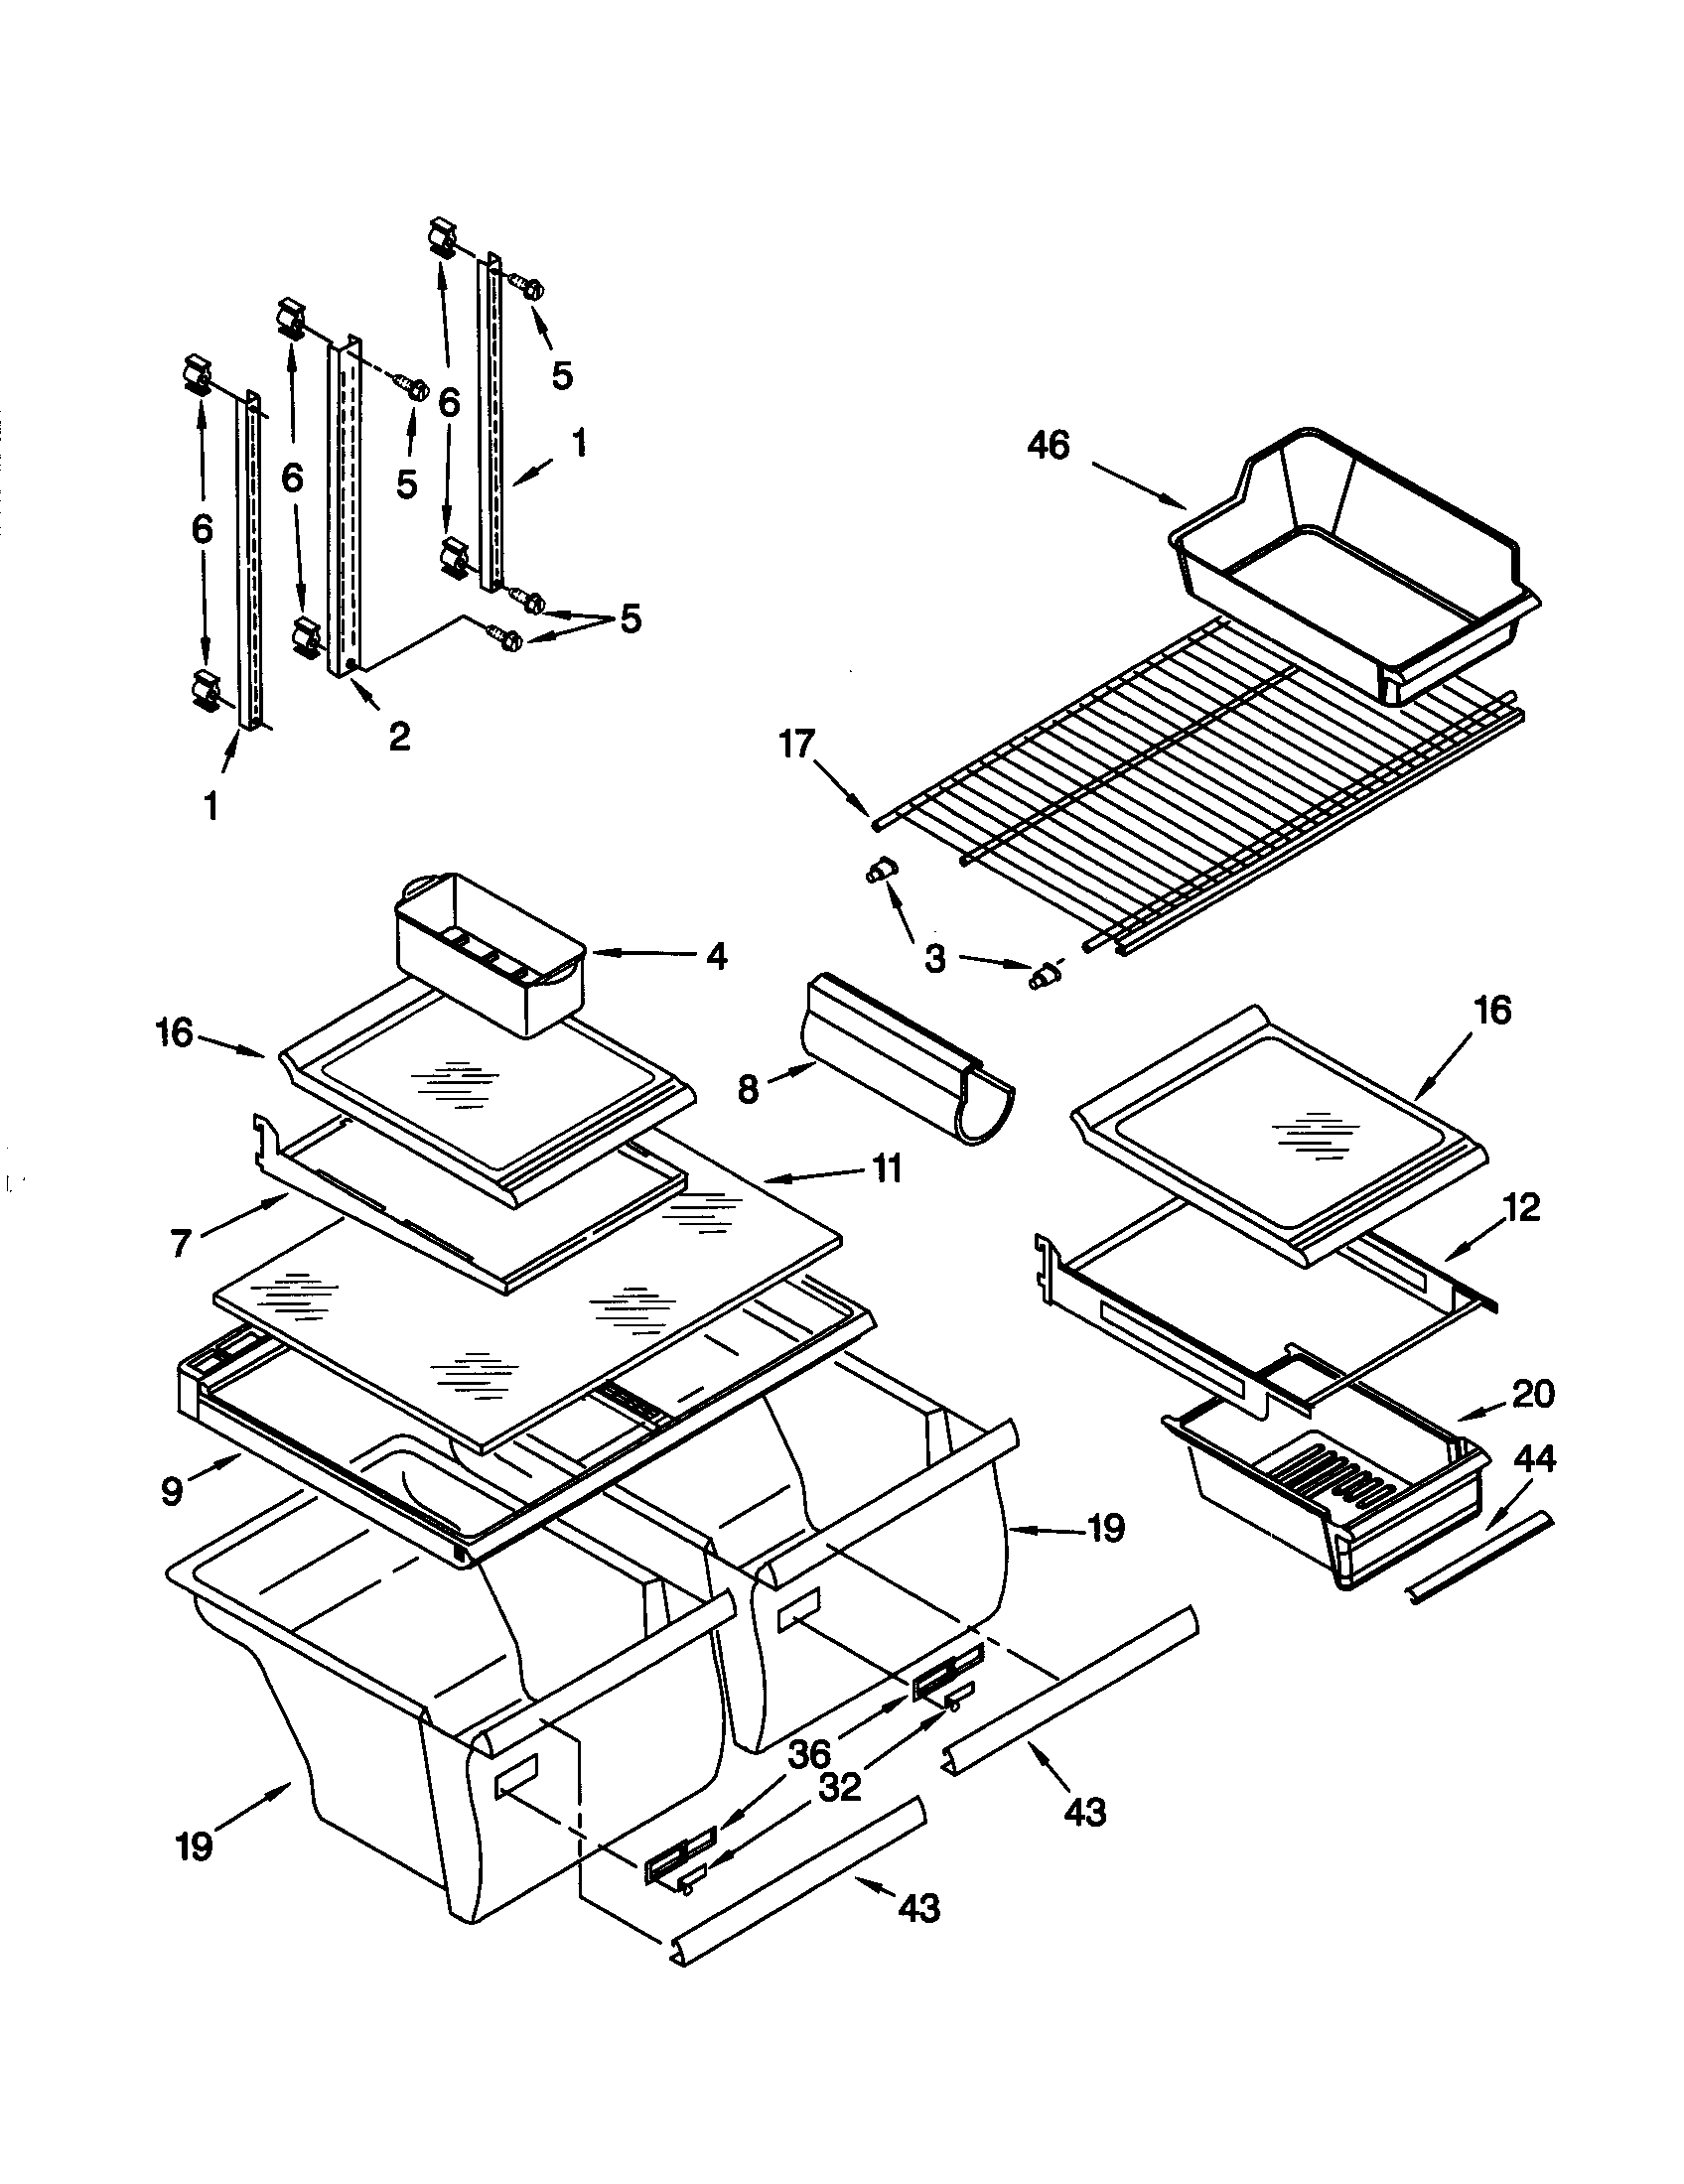 SHELF Diagram & Parts List for Model 10679202990 Kenmore